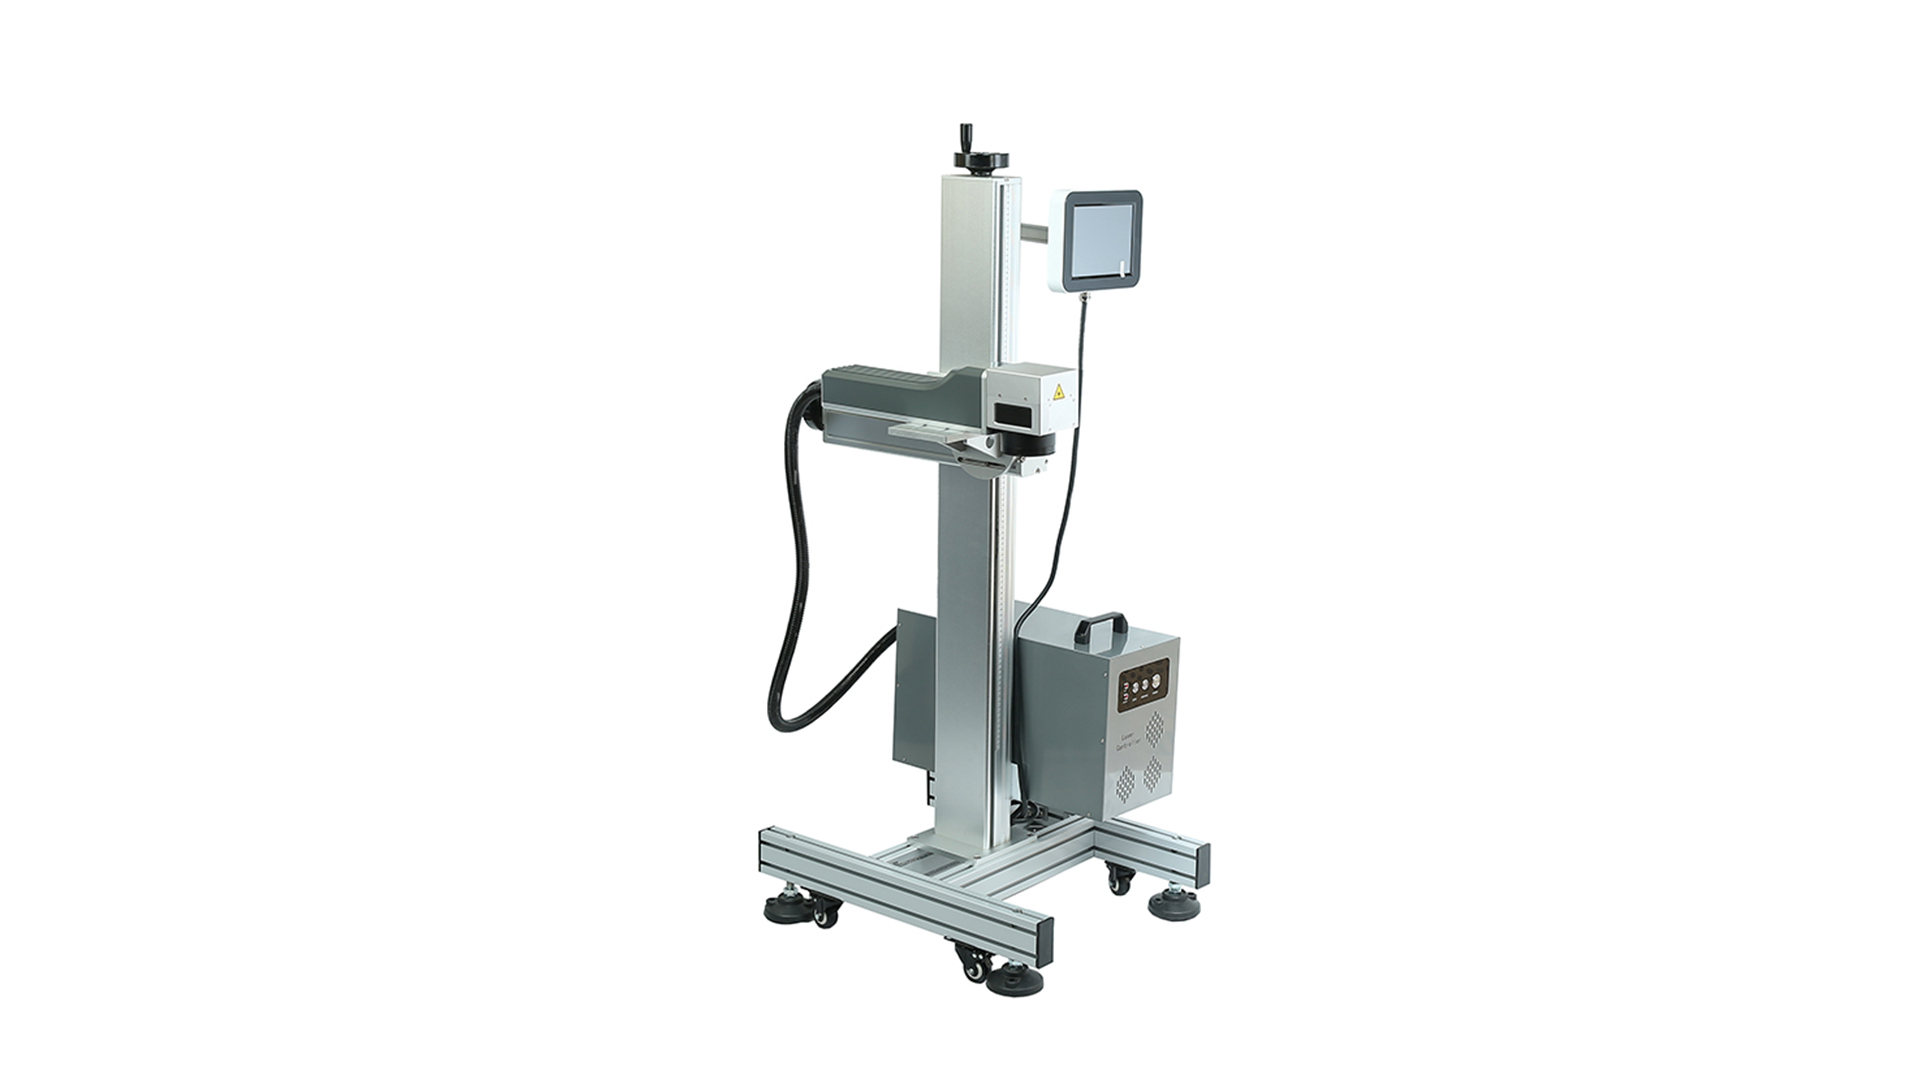 China Fiber Flying Laser Marking Machine with Clefine touch control system| Faith manufacturers-Faith